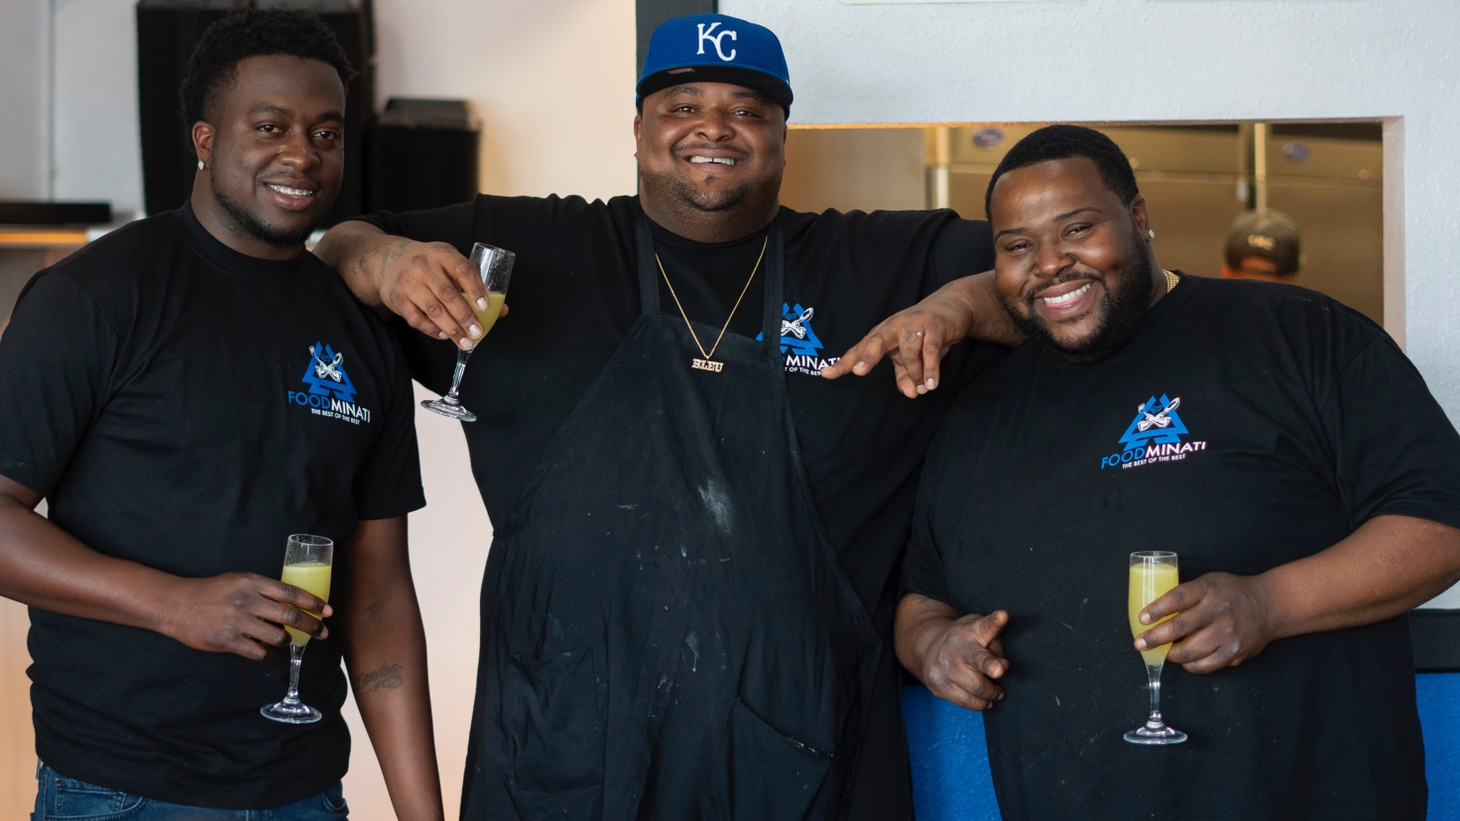 (L-R) Jermelle Henderson, owner of Taco Mell, Calvin Johnson of Bleu Kitchen and Keith Garett of All Flavor No Grease call themselves the Foodminati of the LA food scene. This Saturday they will open their first joint venture, The Court Cafe, a breakfast restaurant in Ladera Heights.